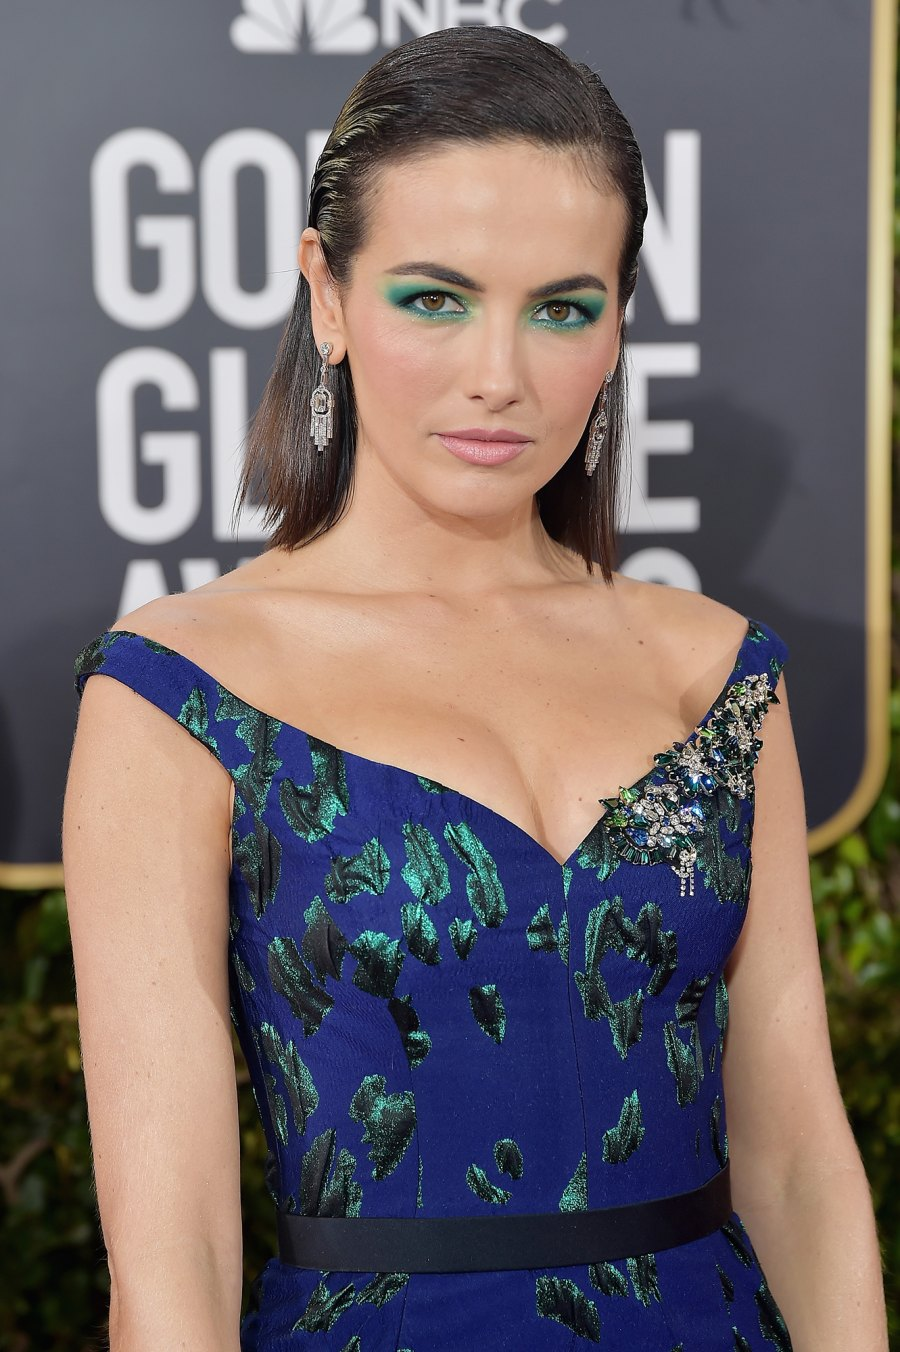 The Hottest Hair and Makeup on the 2019 Golden Globe Awards Red Carpet